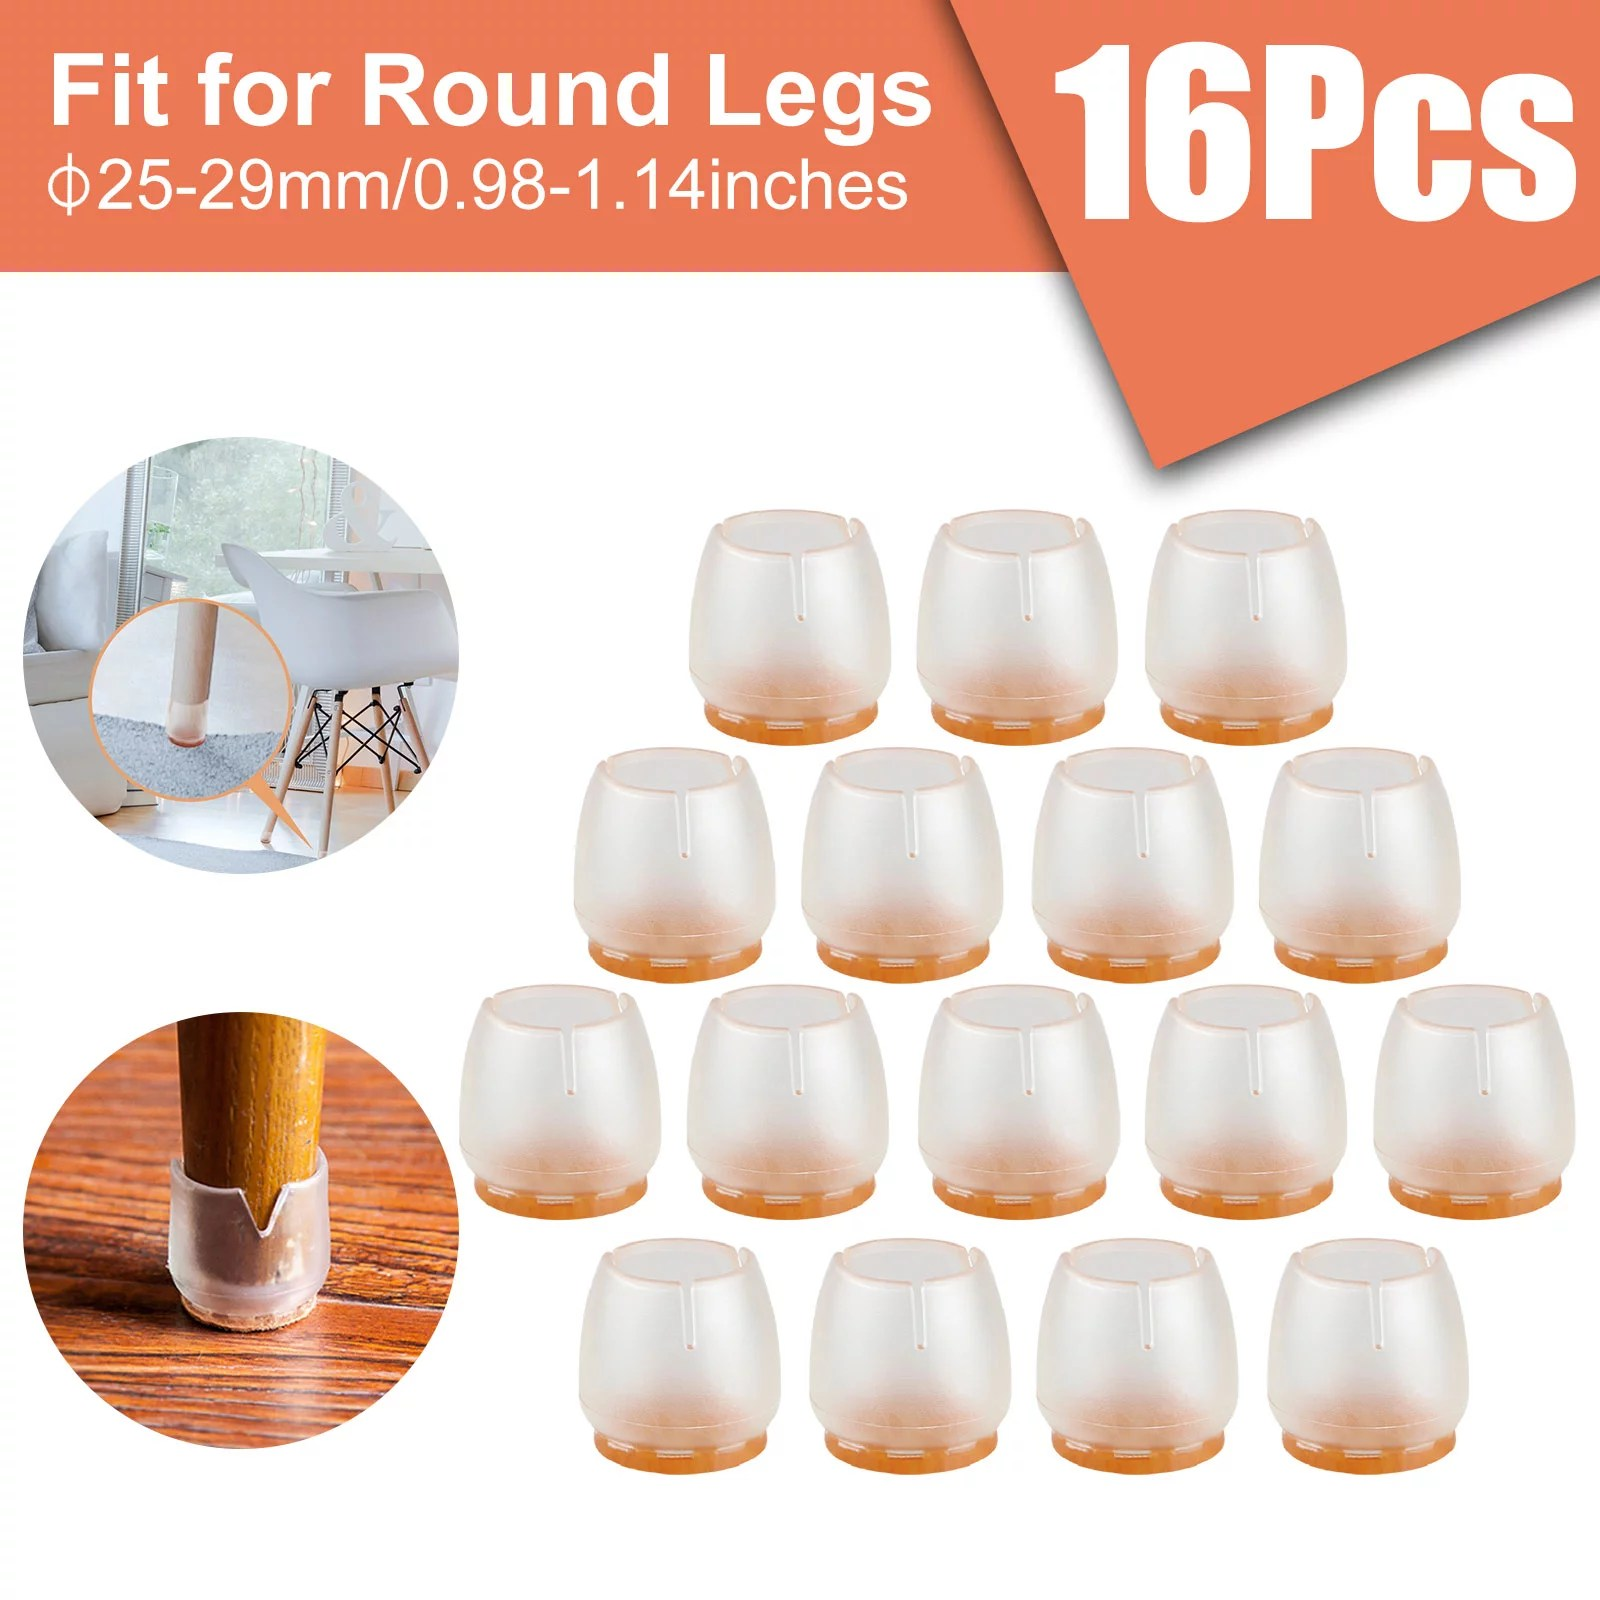 16pcs silicone chair leg caps feet pads furniture table covers floor protector walmart com